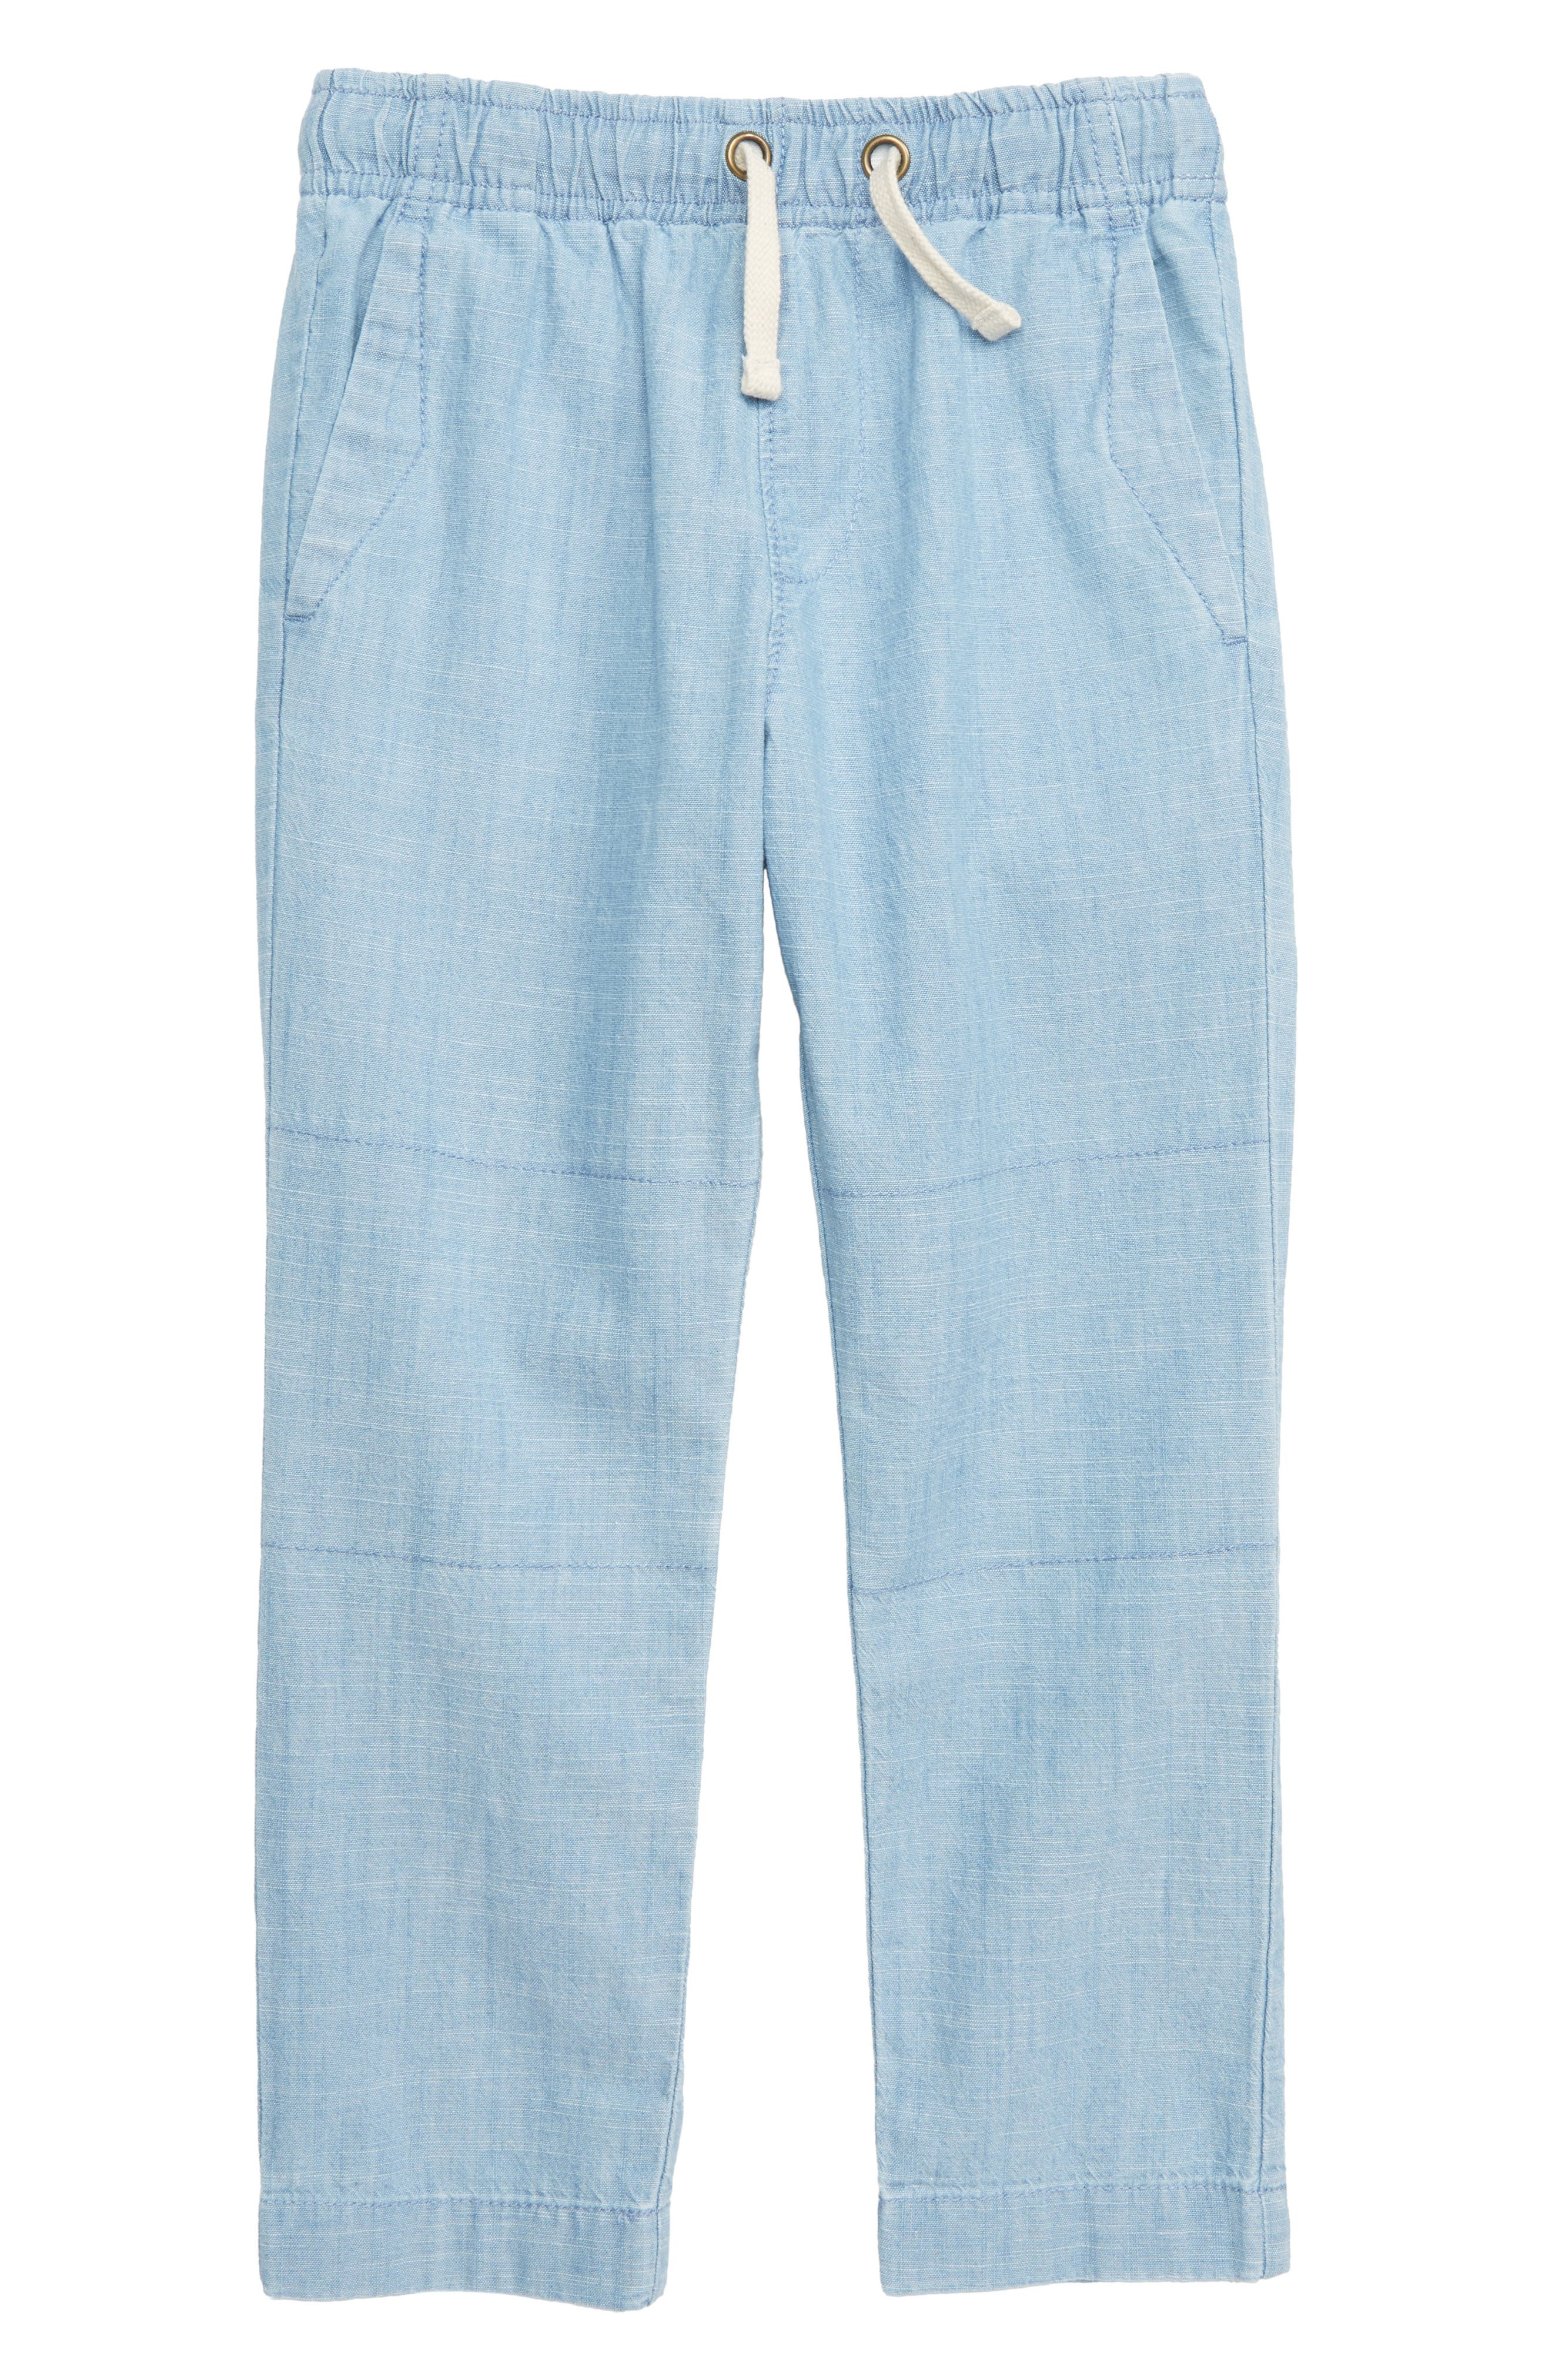 CREWCUTS BY J.CREW,                             Pull-On Chambray Pants with Reinforced Knees,                             Main thumbnail 1, color,                             MEDIUM CHAMBRAY WASH